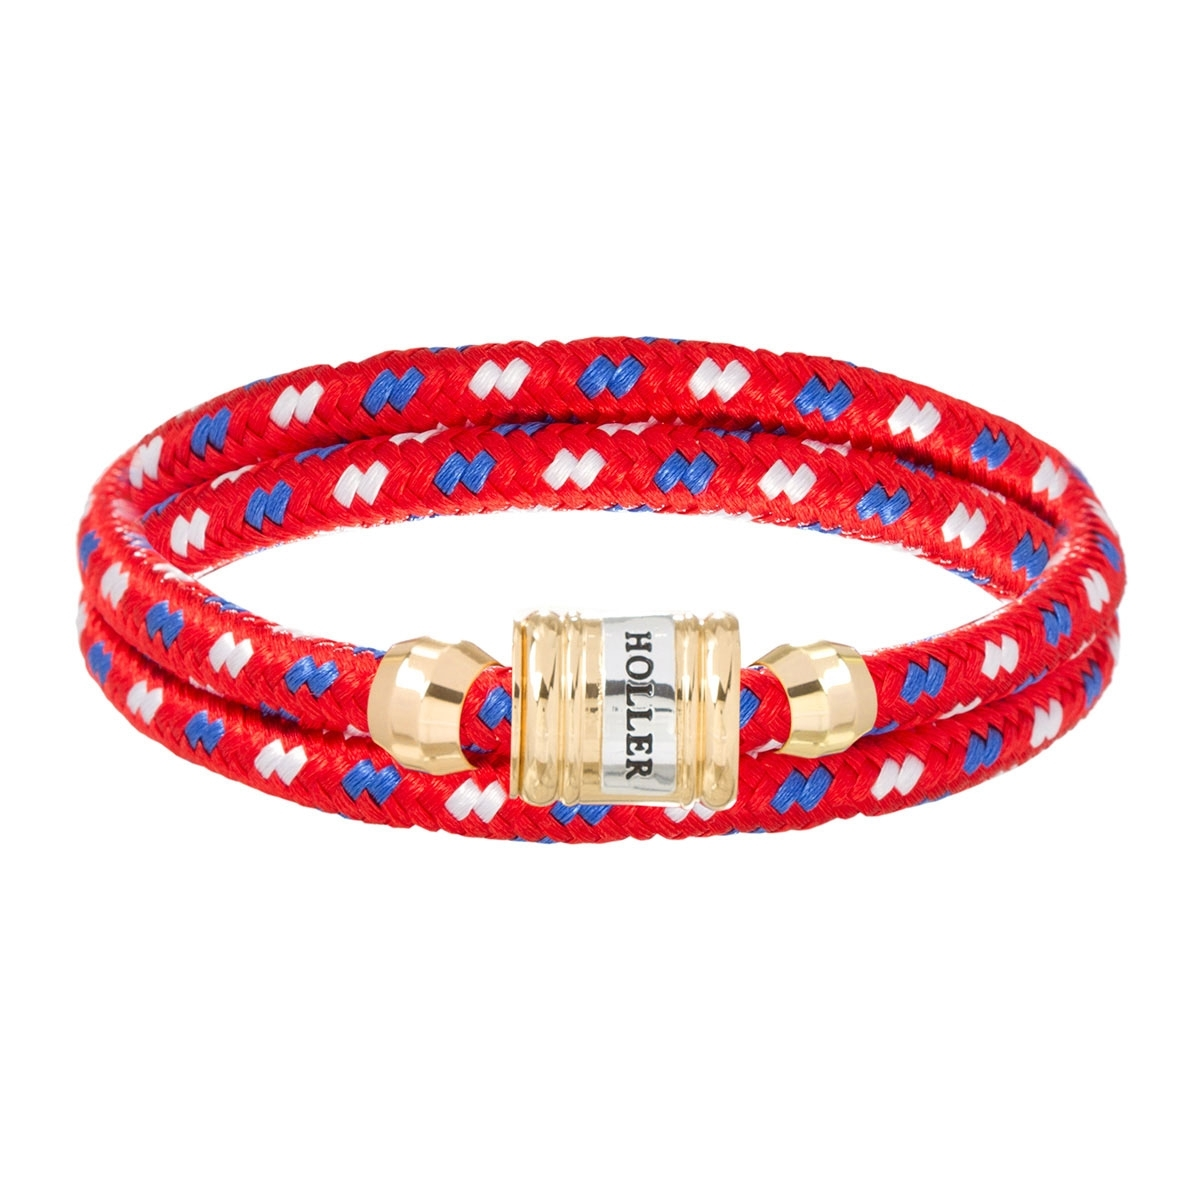 Bailey Gold Polished Barrel / Red Paracord Bracelet